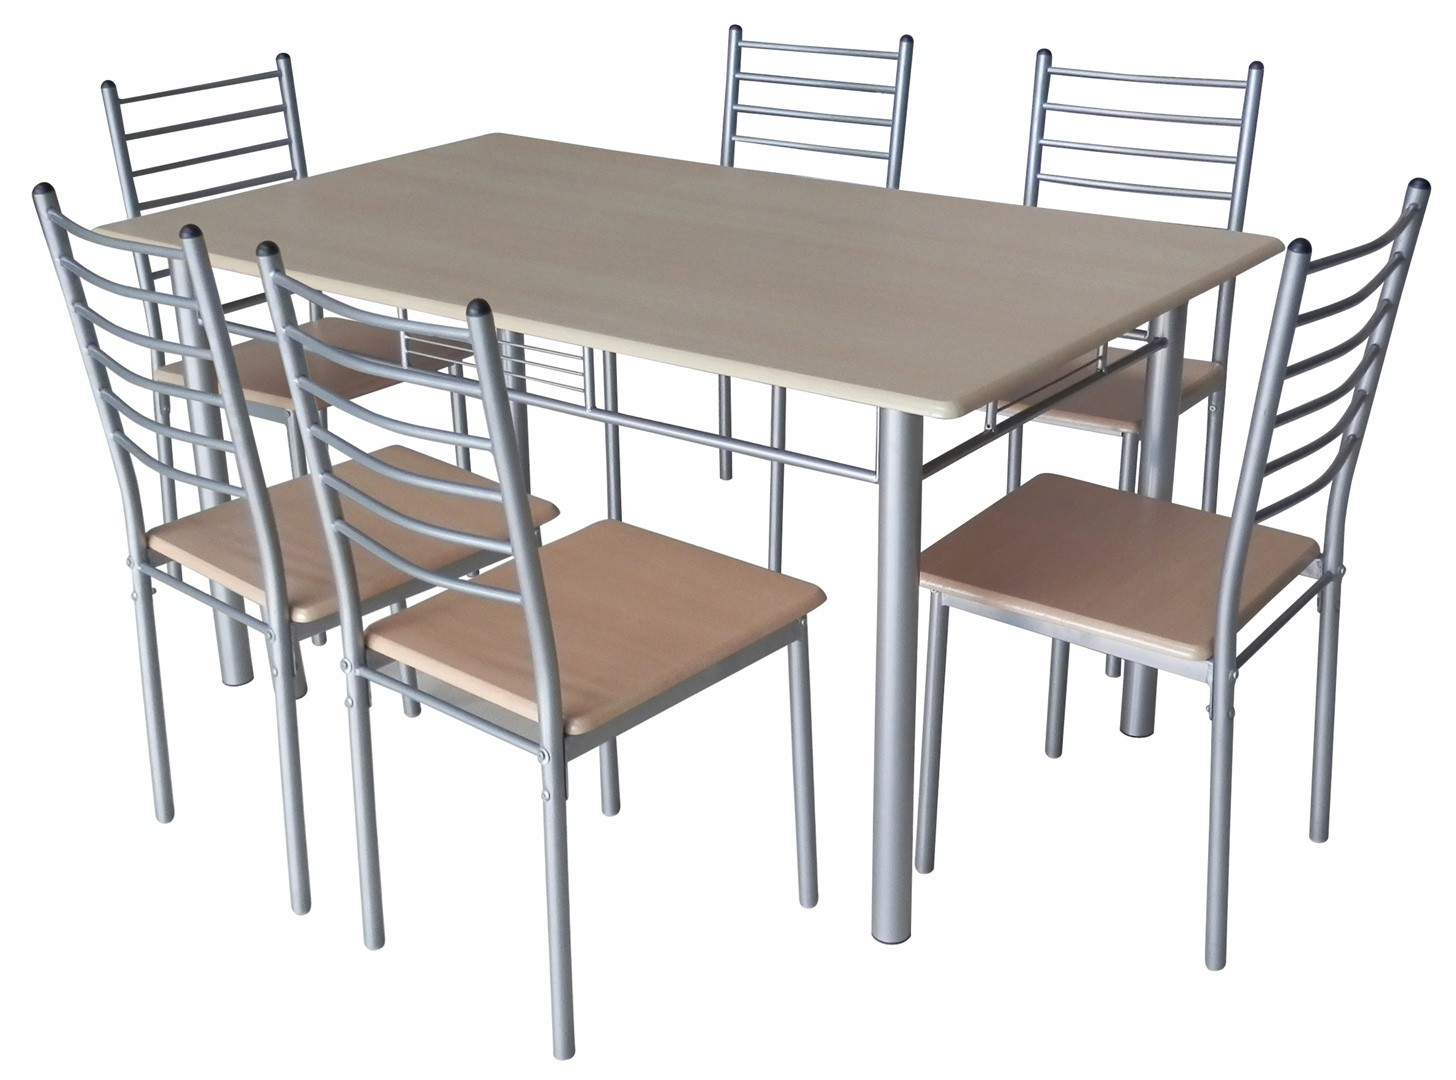 Ensemble table et chaises de cuisine but chaise id es for Cuisine chaise